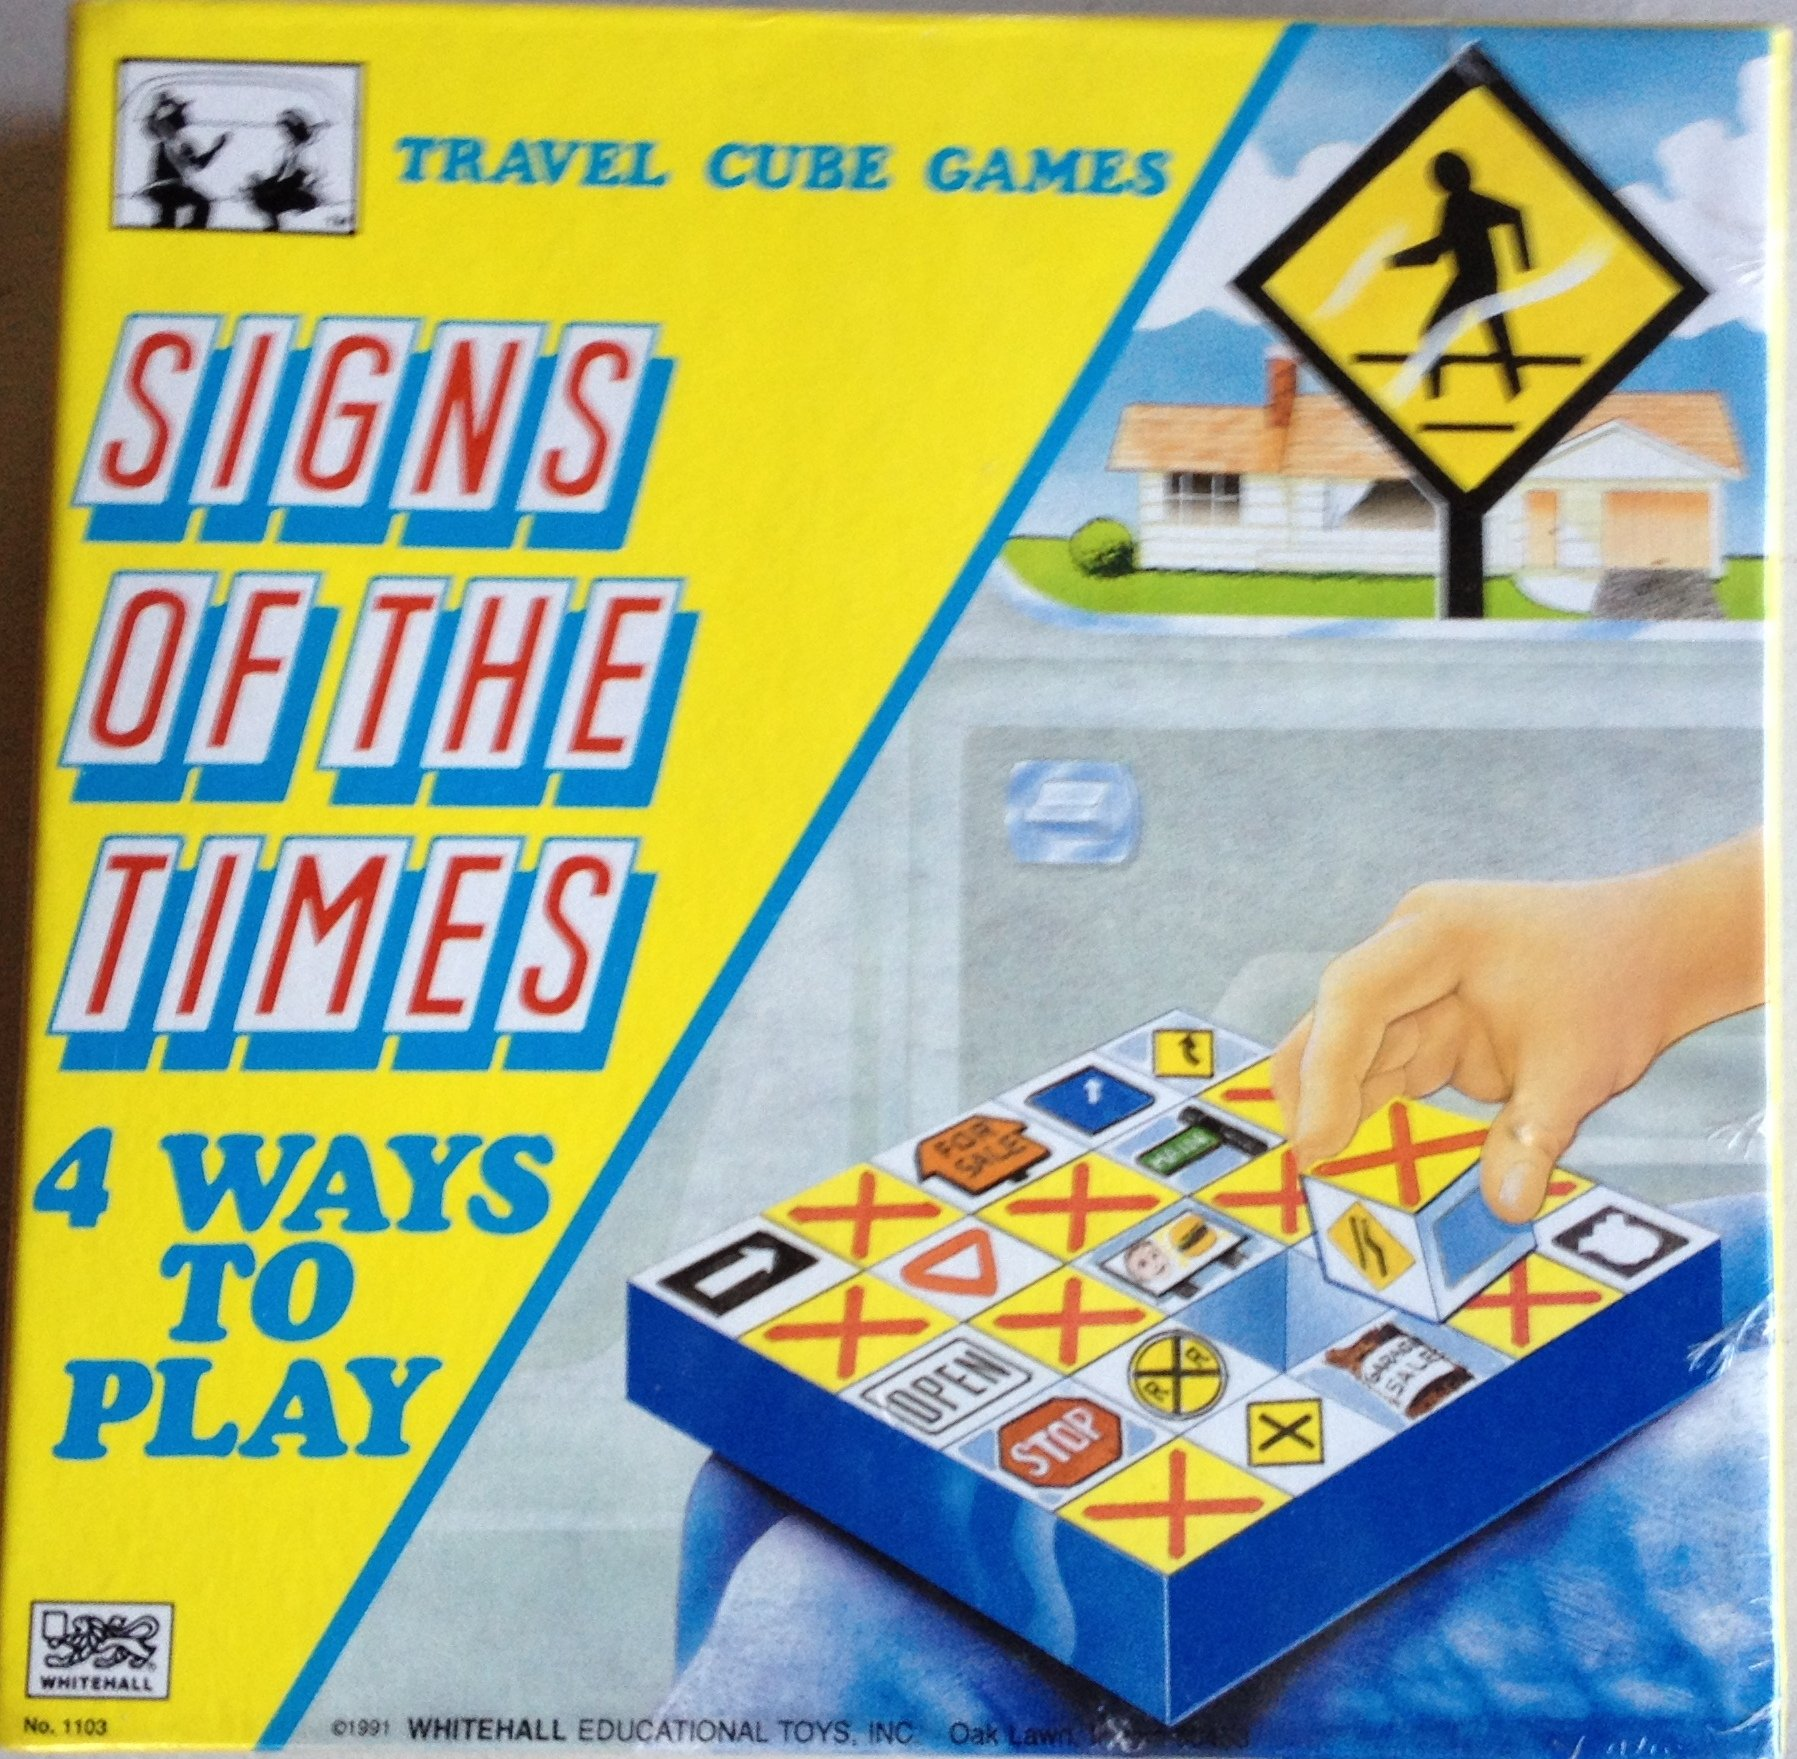 SIGNS OF THE TIMES-Travel Cube Games- Vintage 1991 by Whitehall Educational Toys Inc